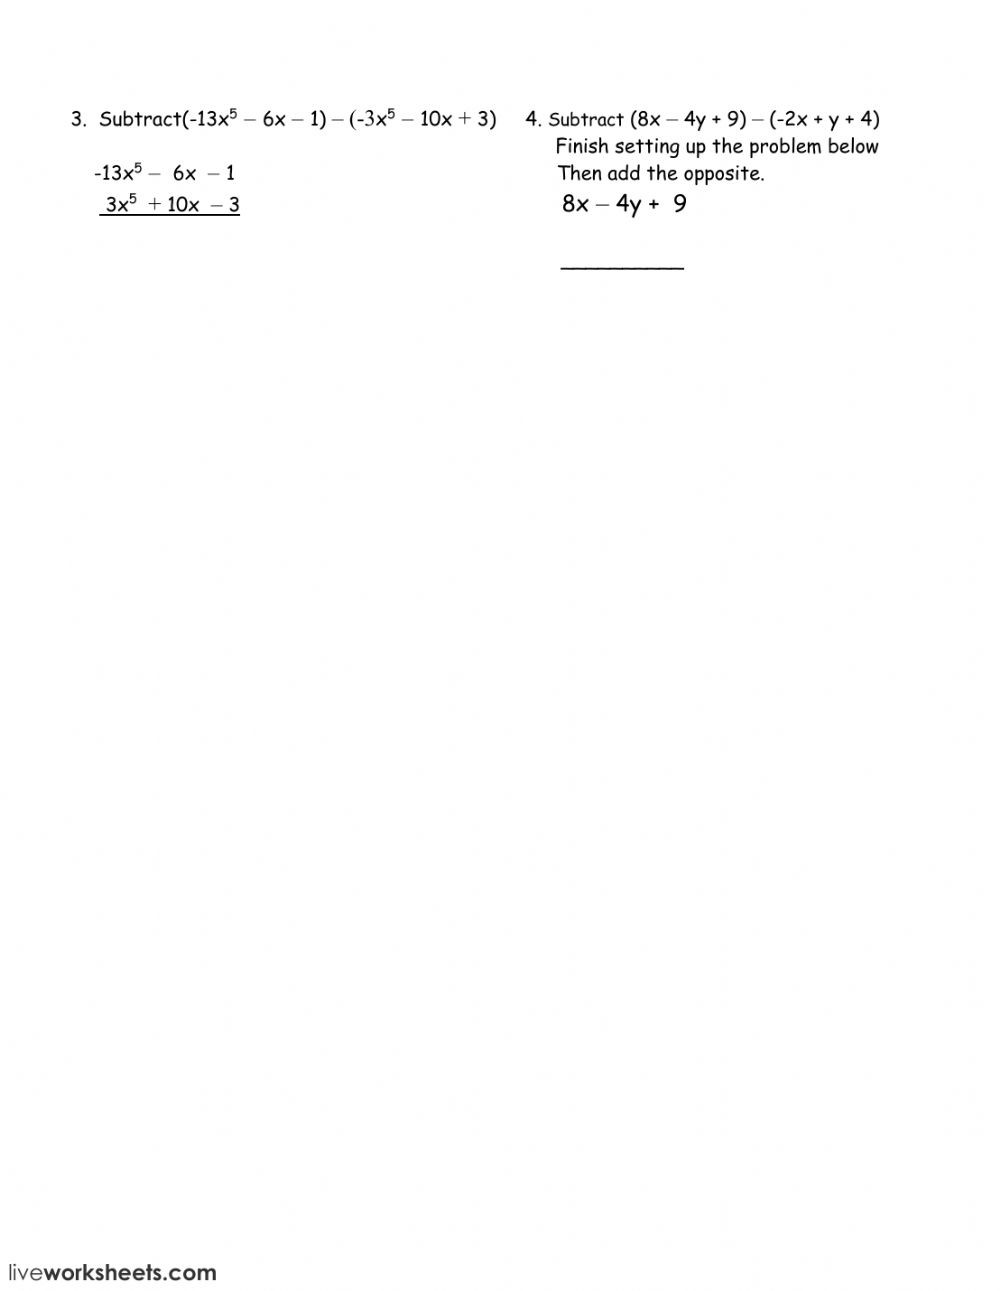 Adding and Subtracting Polynomials Worksheet Subtracting Polynomials Interactive Worksheet